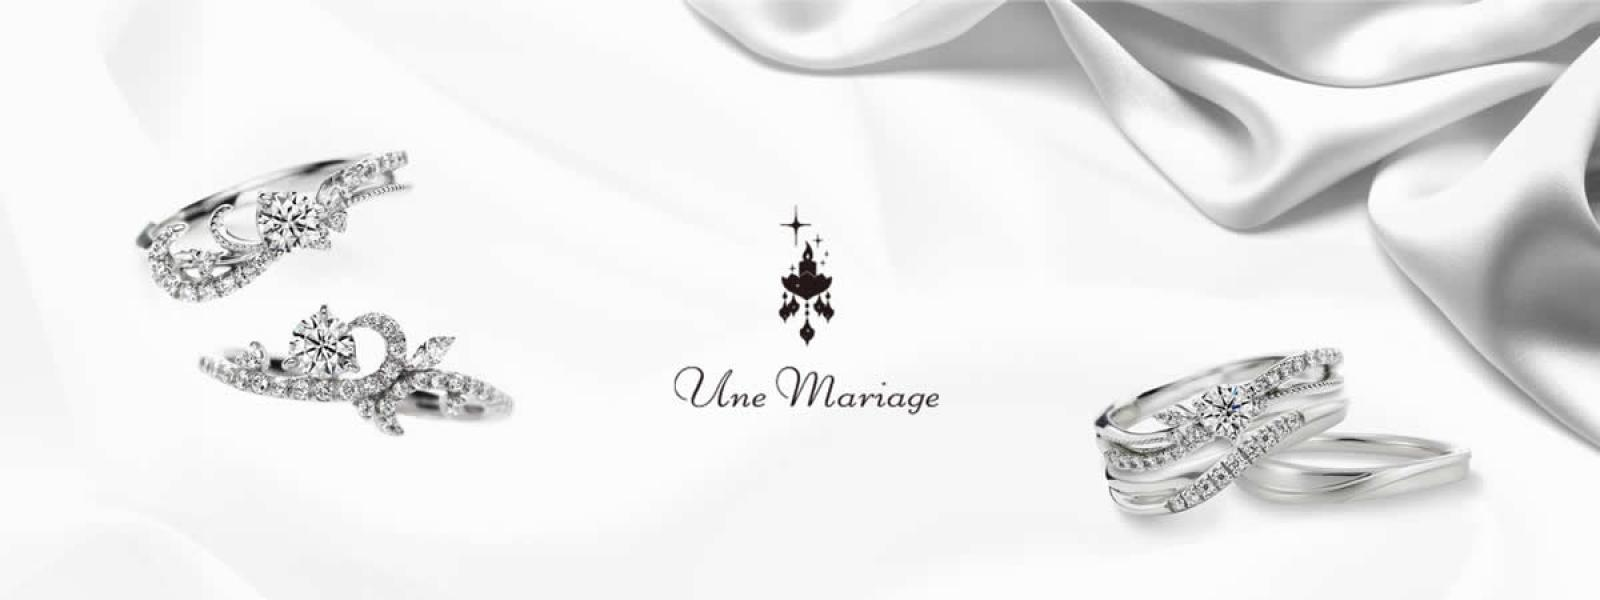 UNE MARIAGE